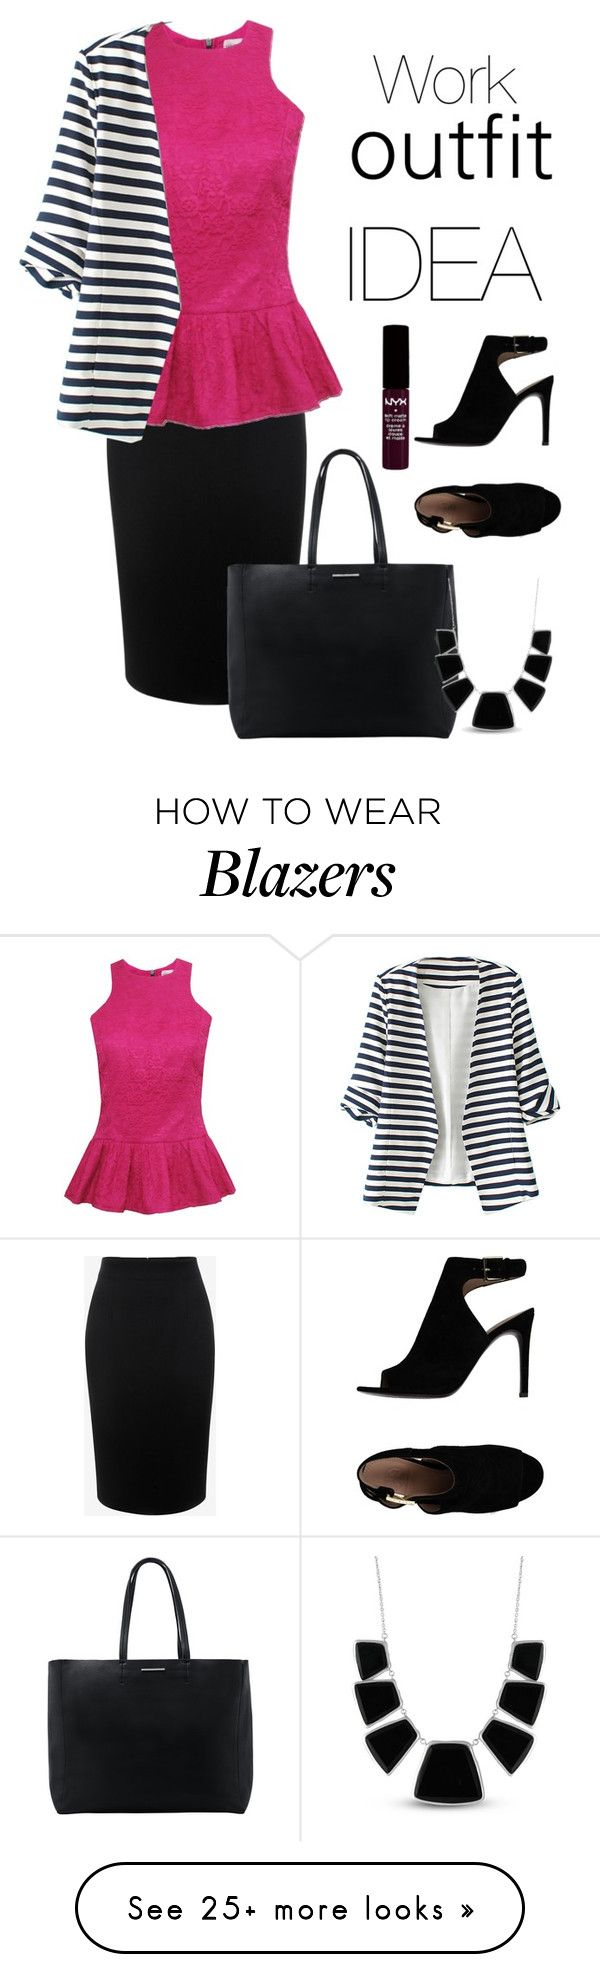 """Work outfit idea"" by anja-jovanovich on Polyvore featuring Alexander McQueen, WithChic, MANGO, Tory Burch, Karen Kane and NYX"